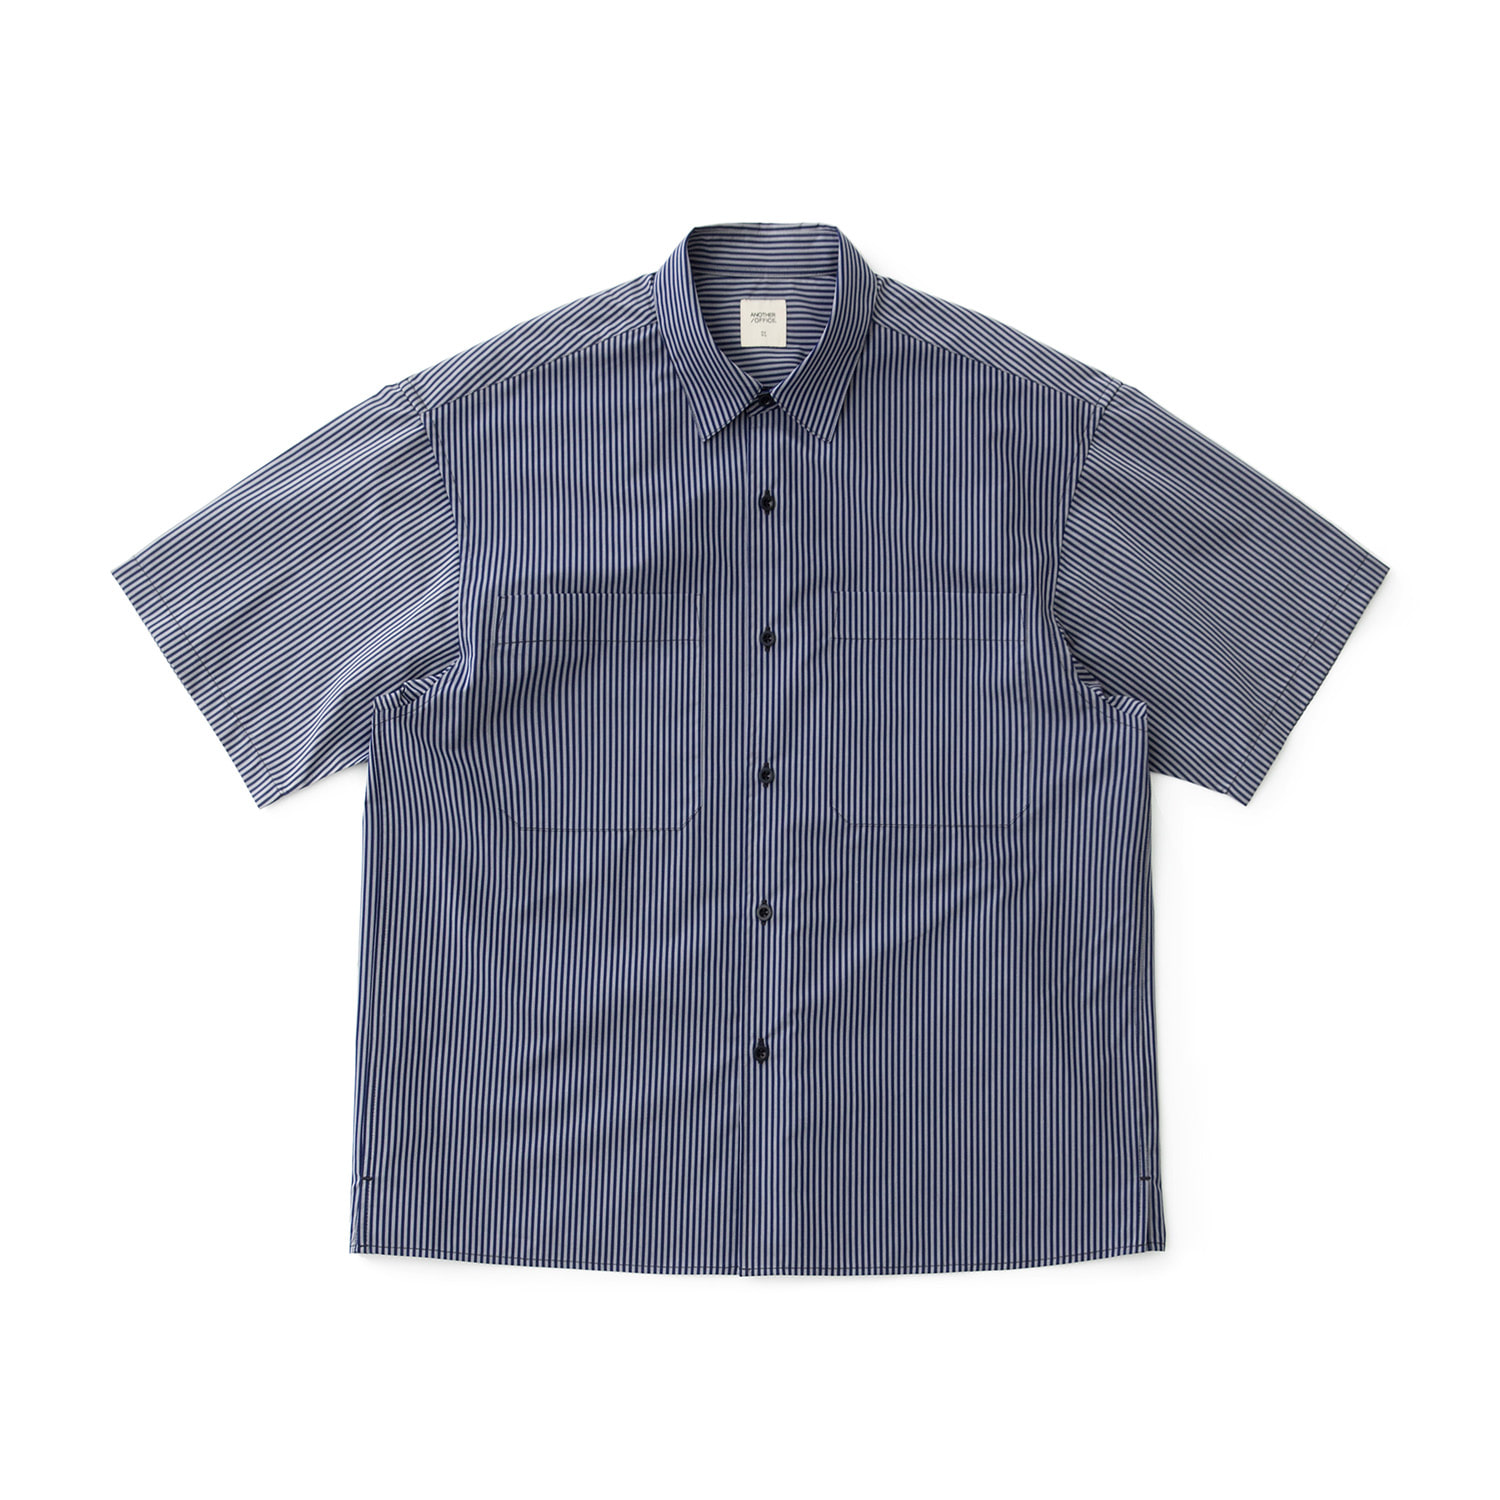 [재입고] Writer Shirt (Ivy Stripe)